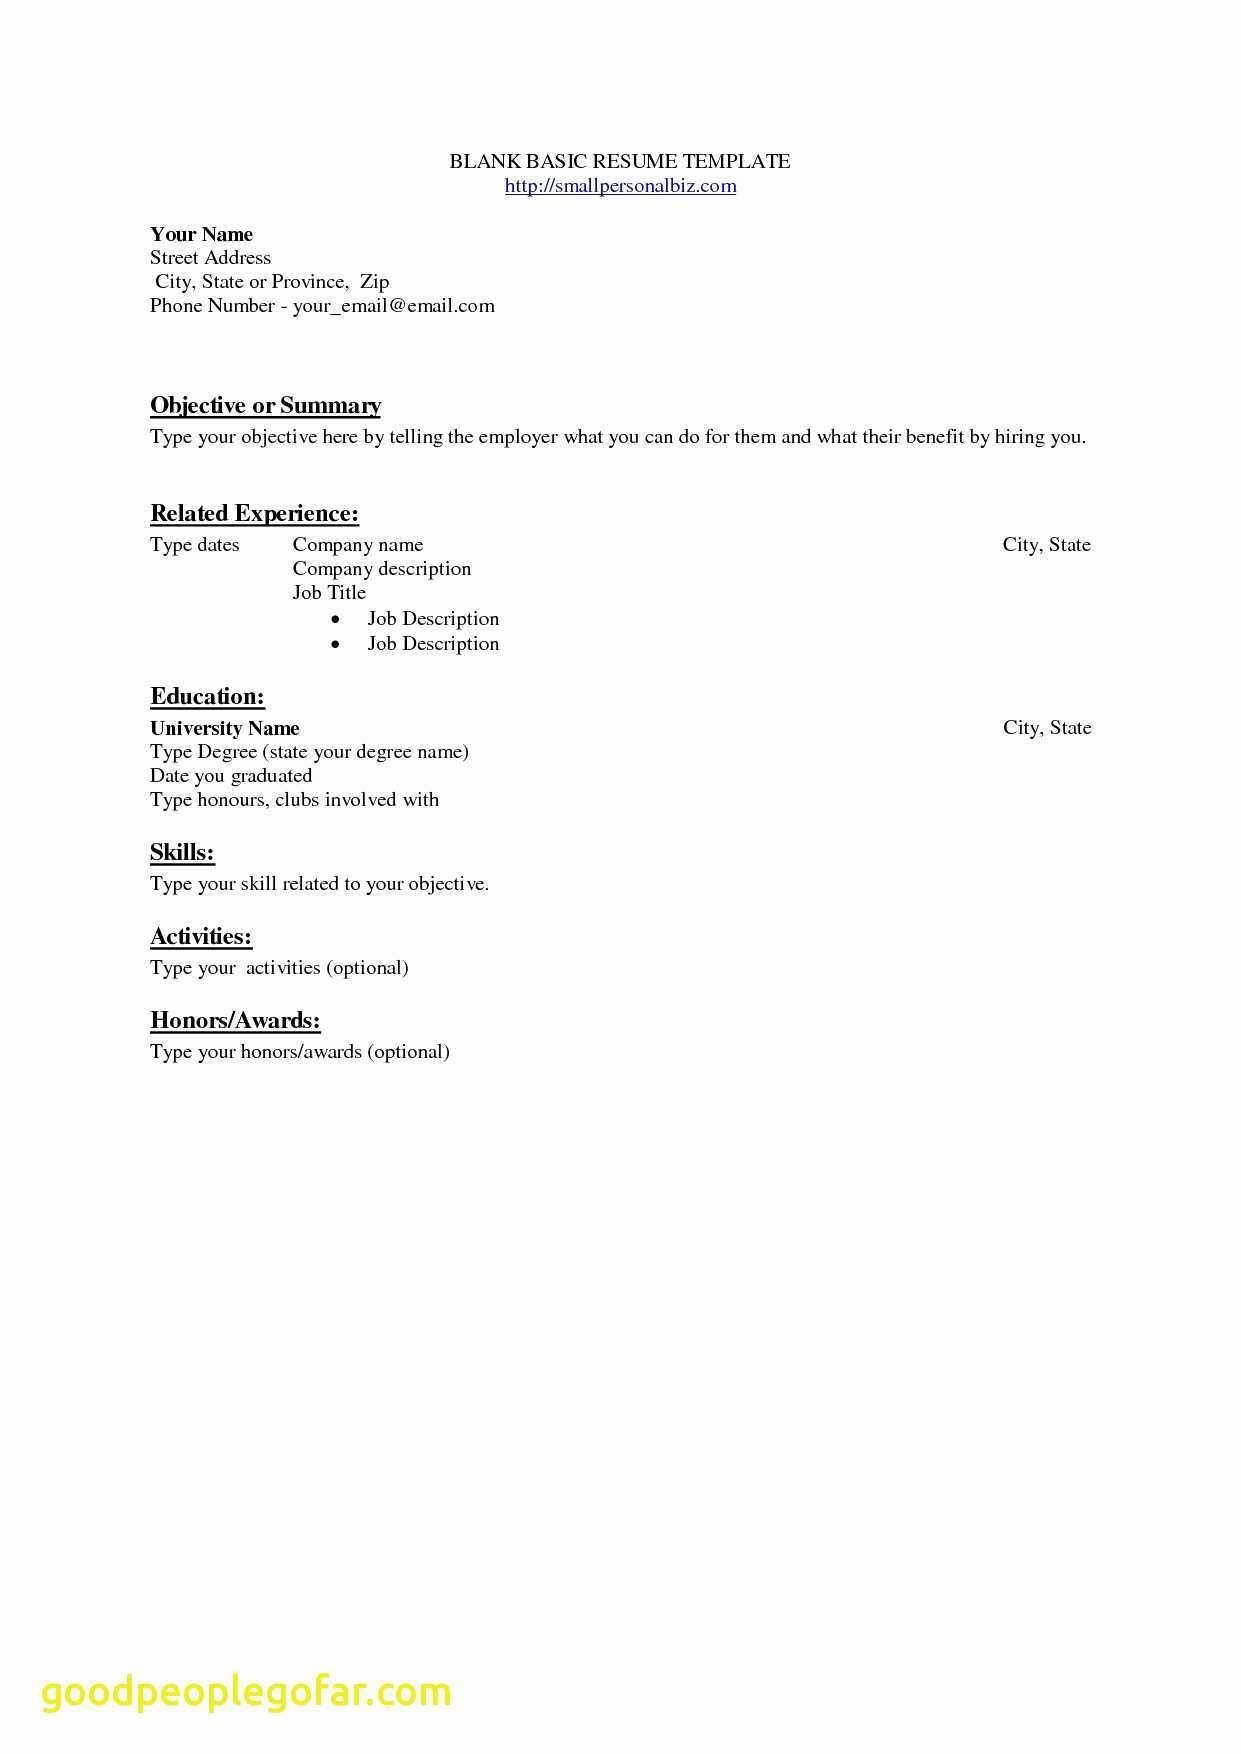 What Employers Look for In A Resume - What Does A Professional Resume Look Like New Luxury Resume Tem